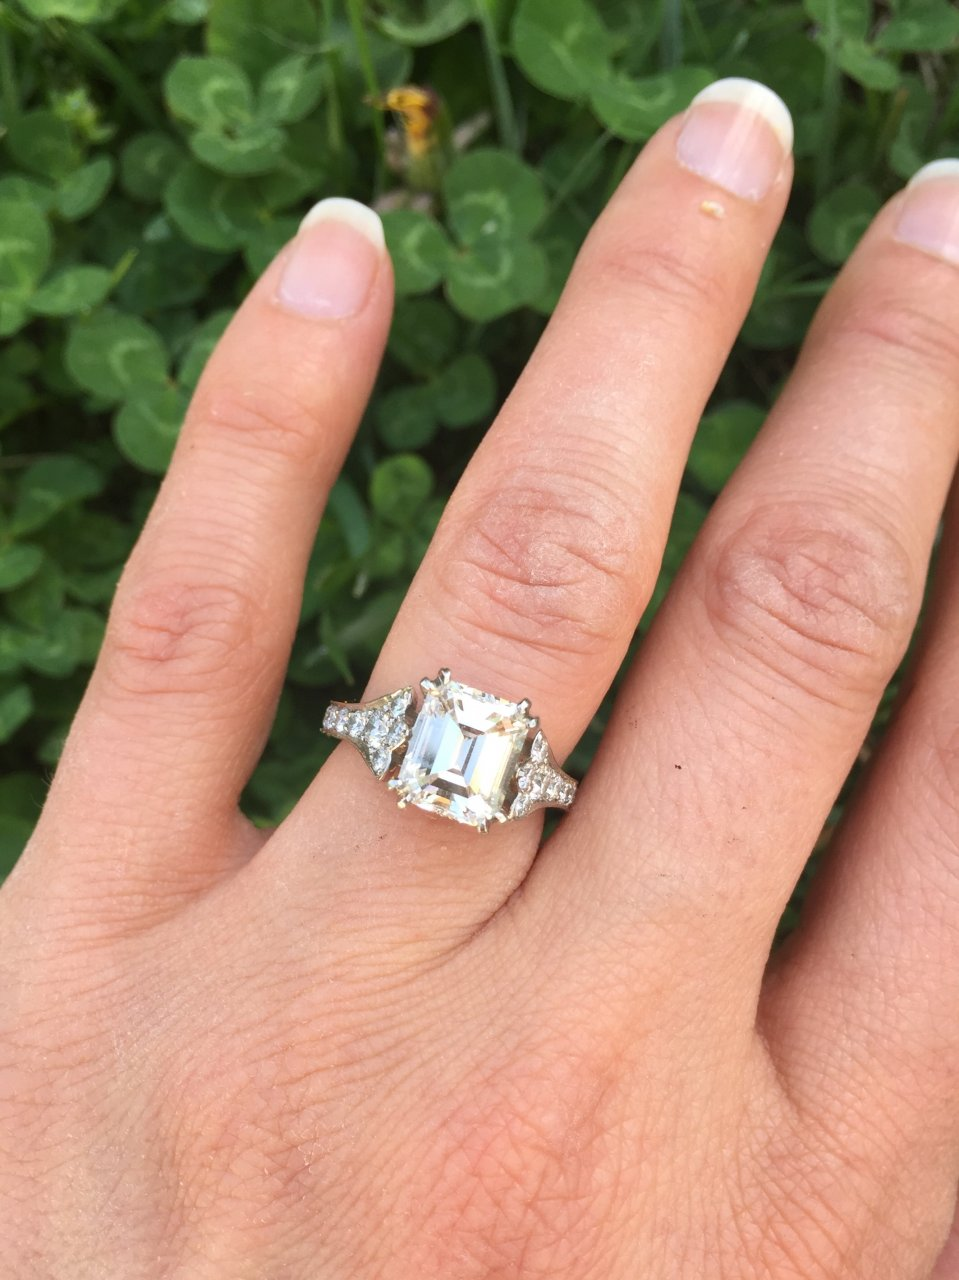 Almost-there's 2.5 emerald cut diamond vintage ring hand shot